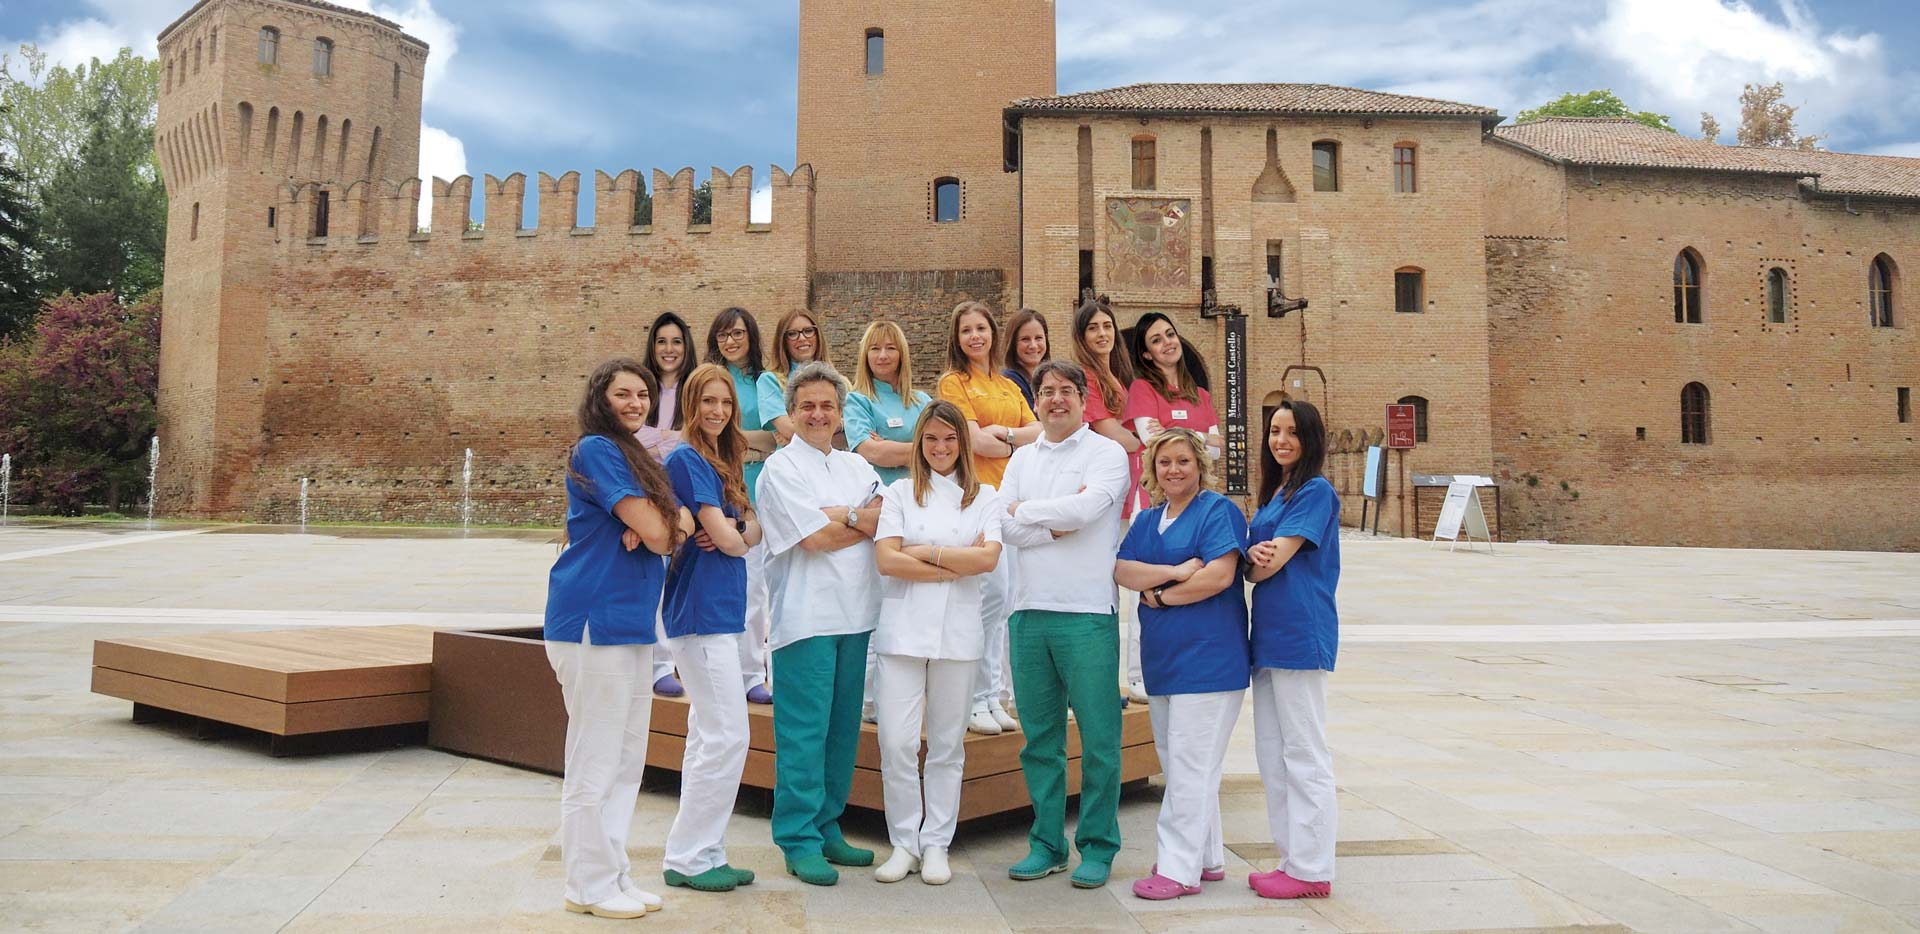 Dentista a Formigine | Studio dentistico Galassini